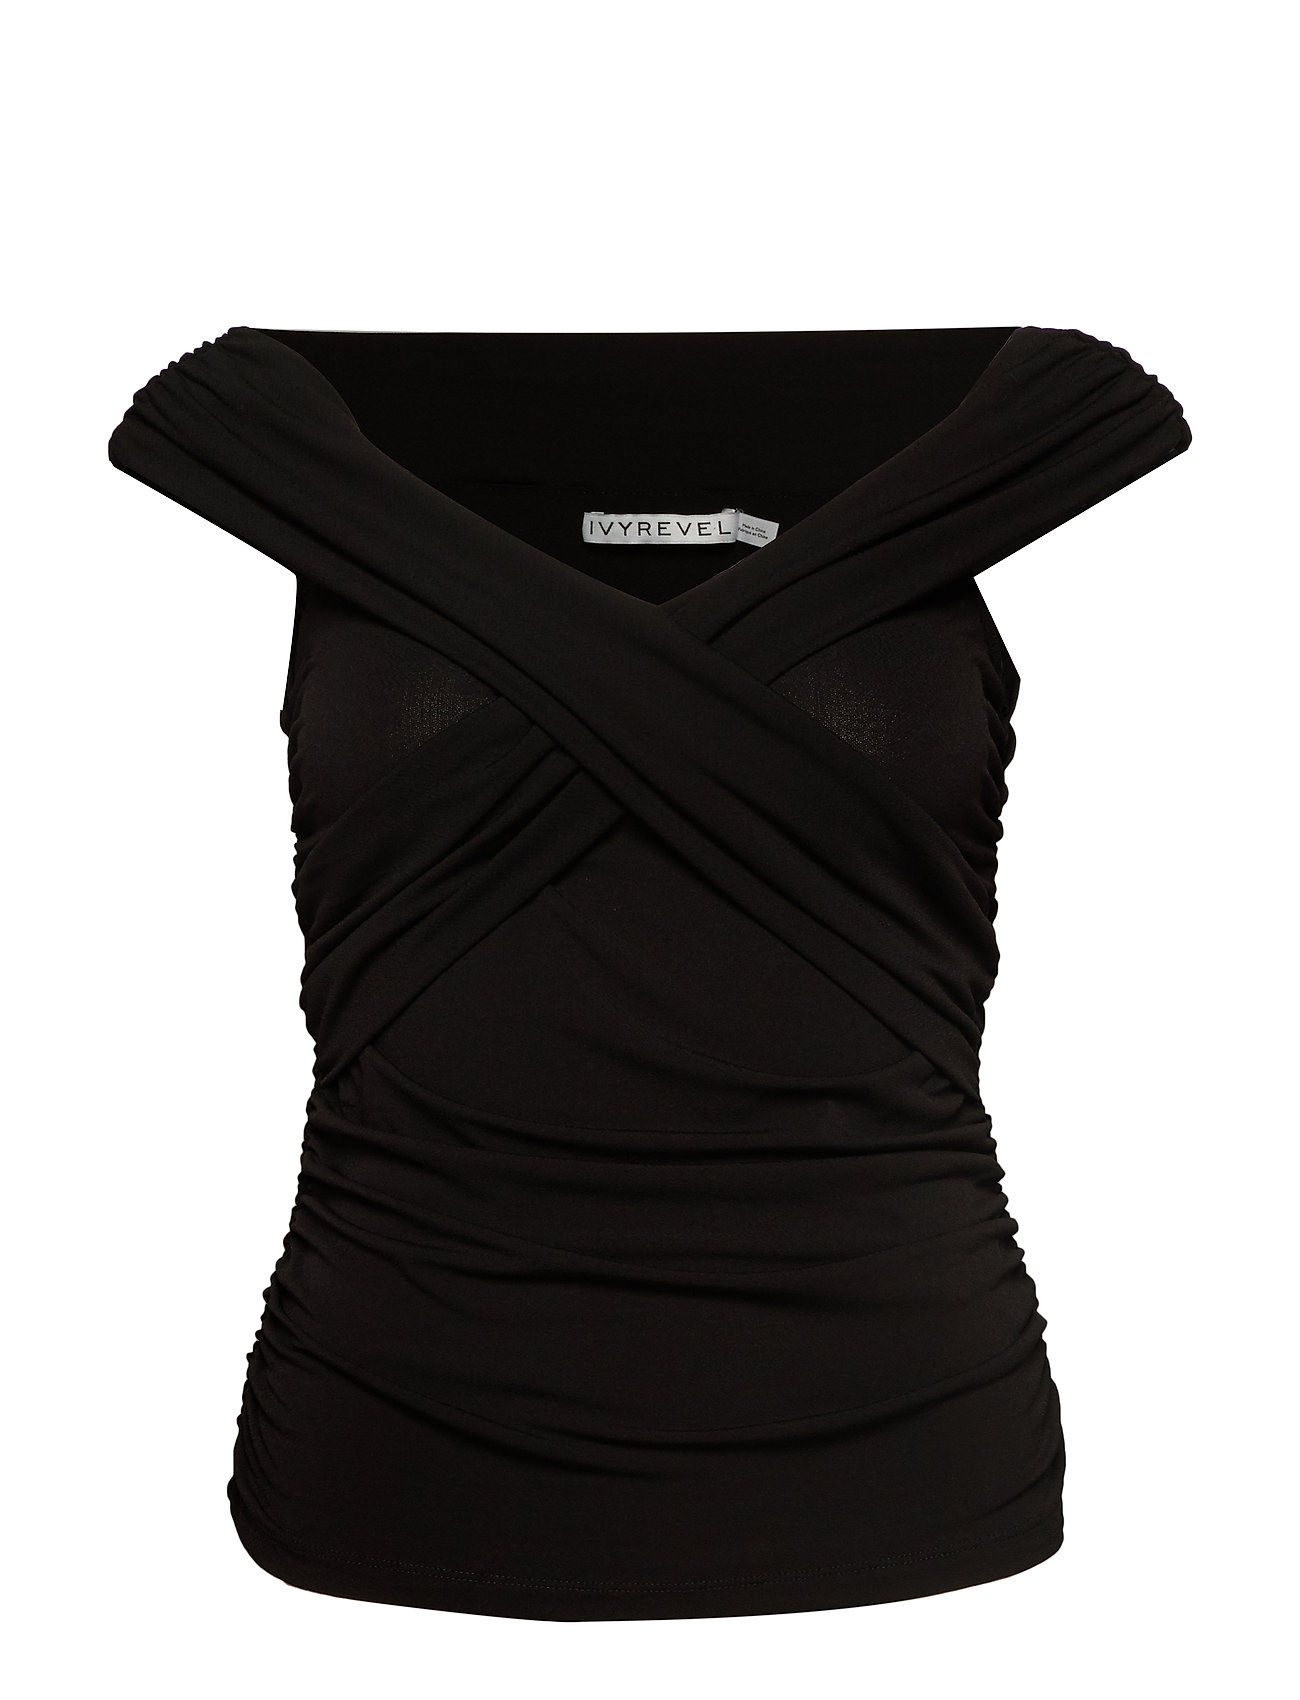 Ivyrevel CROSS FRONT TOP - BLACK